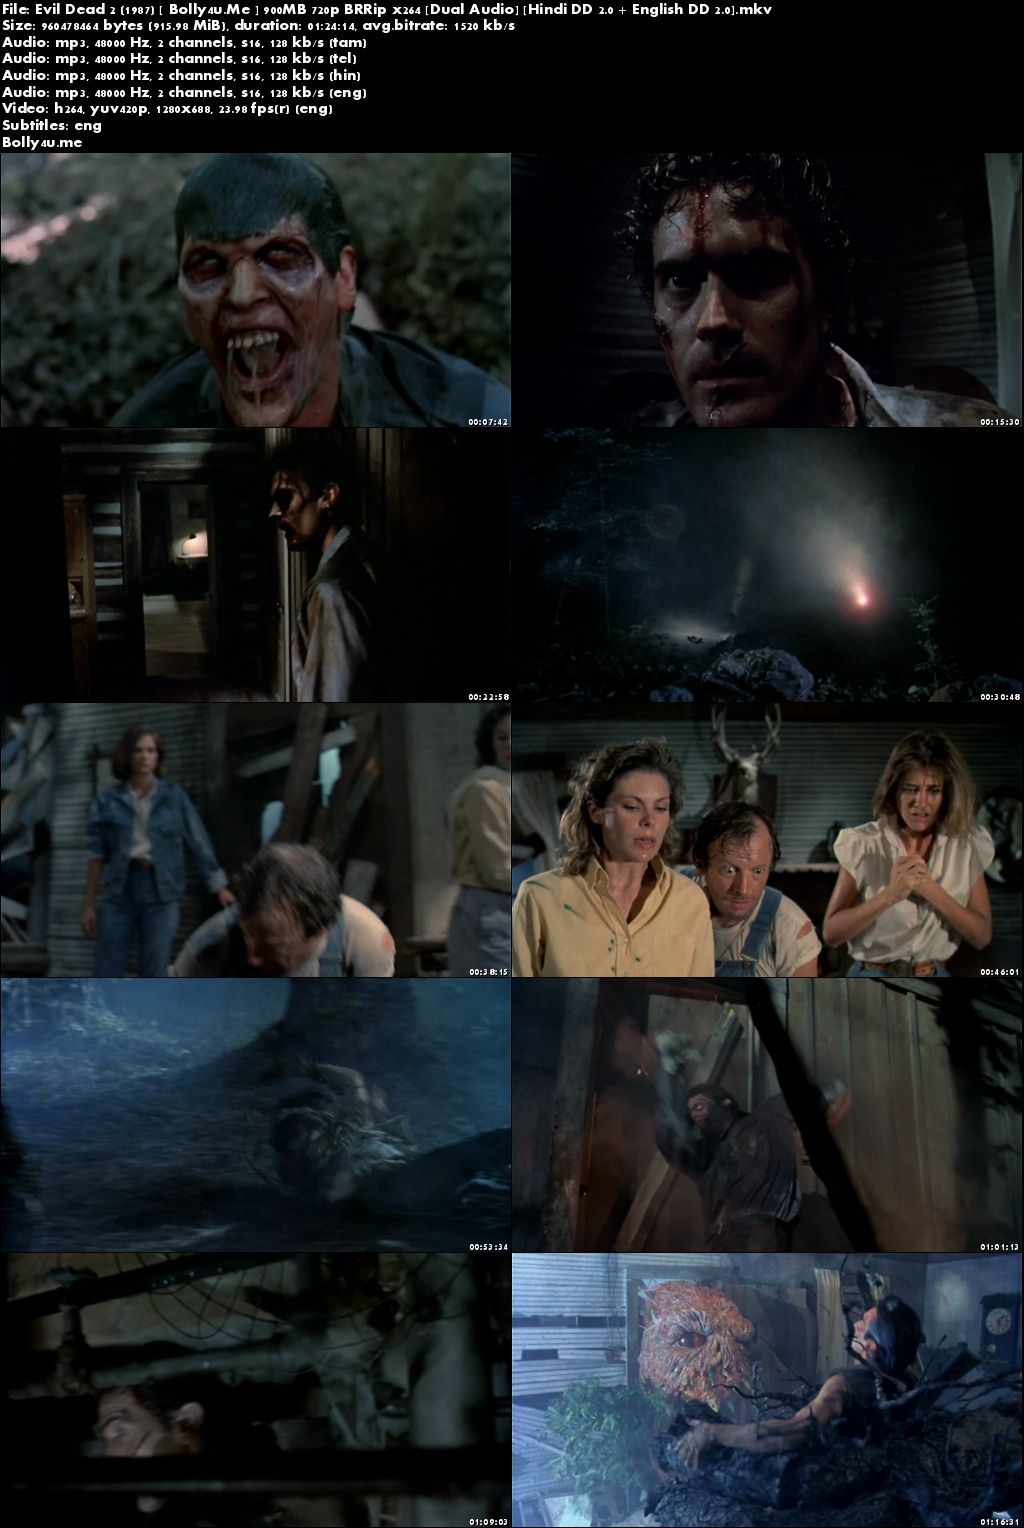 Evil Dead 2 1987 BRRip 300MB Hindi Dual Audio 480p Download